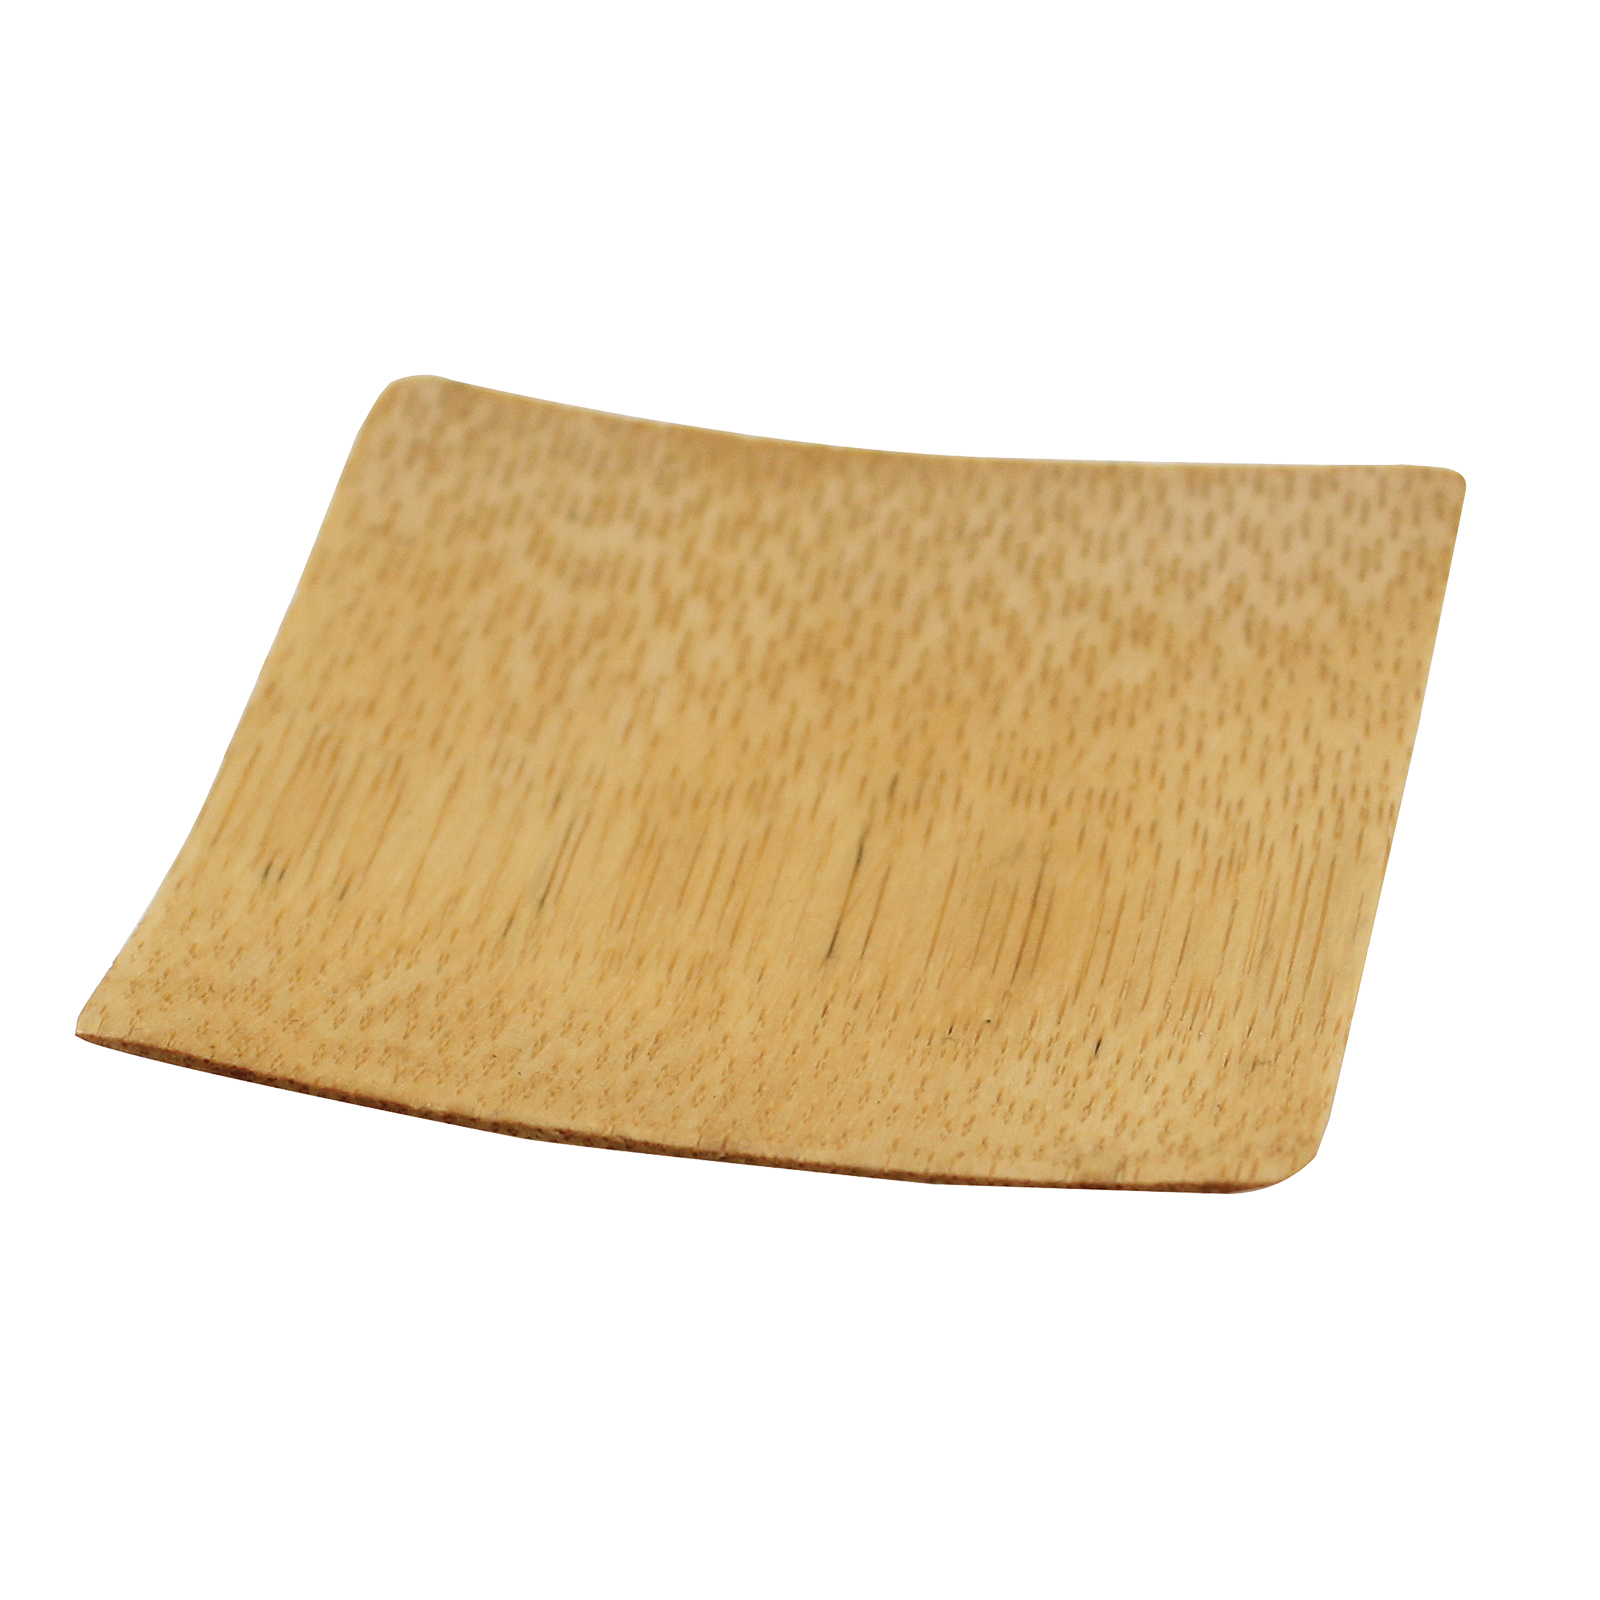 TableCraft Products BAMDSBAM2 disposable platters / trays